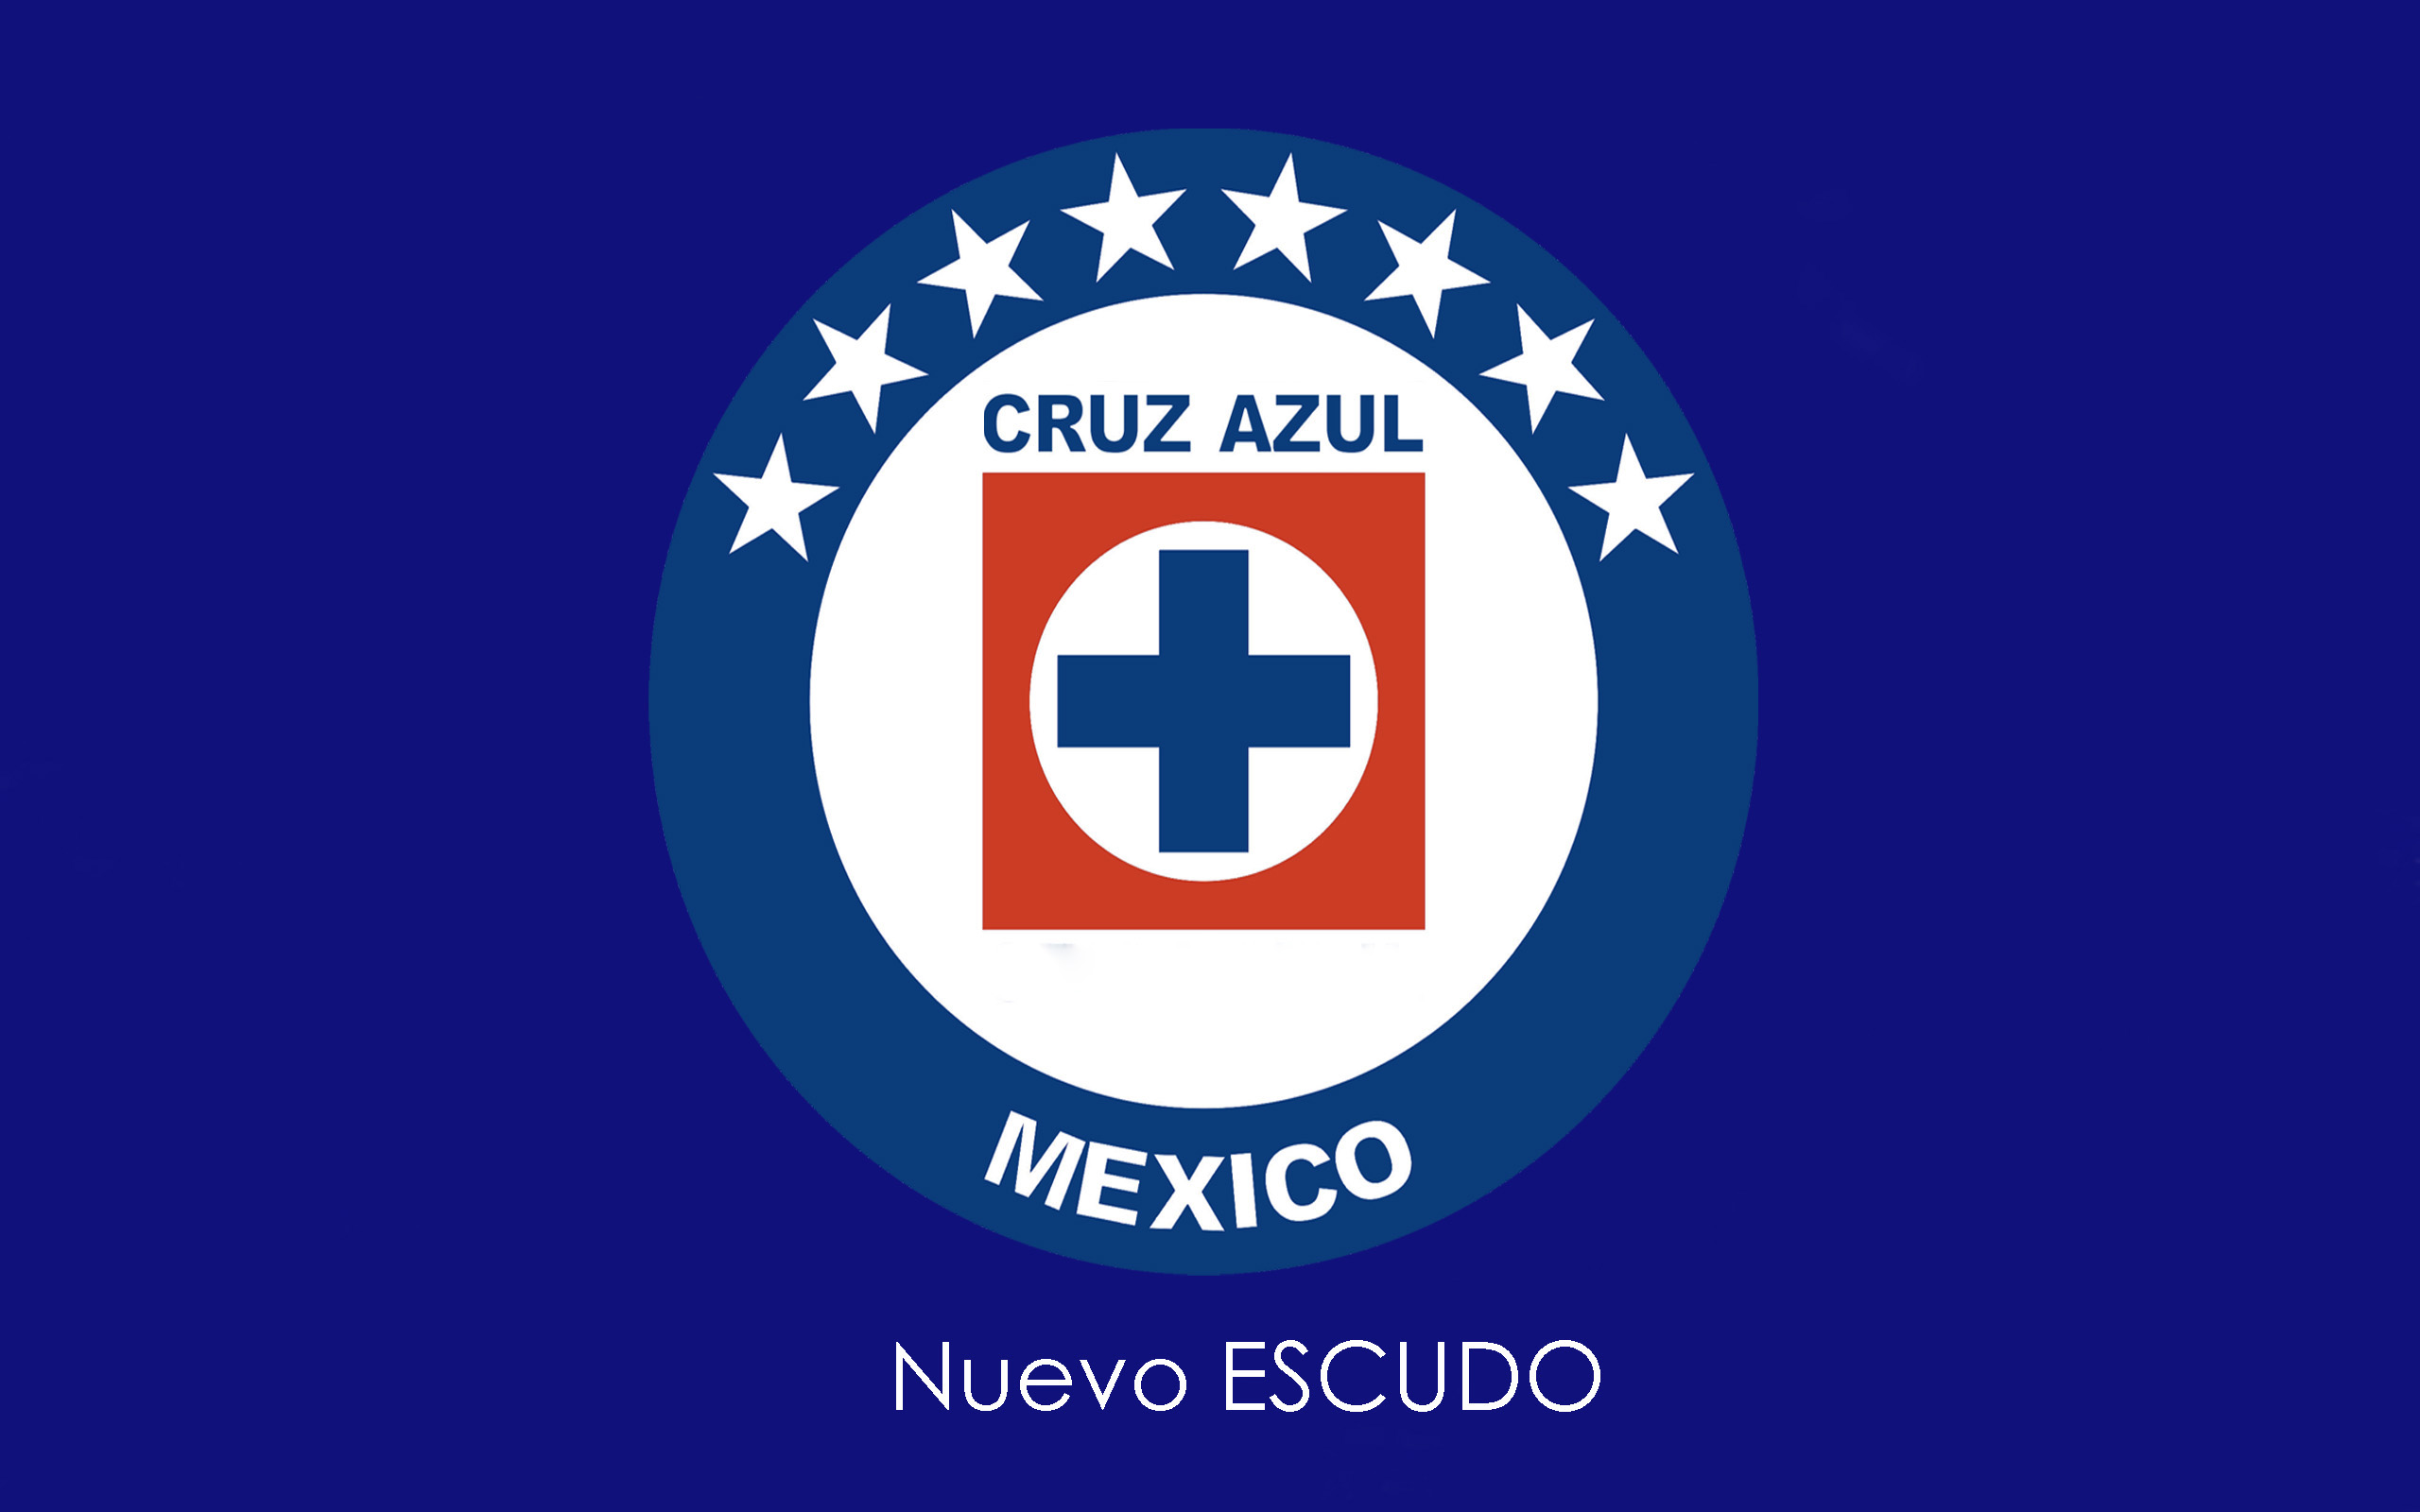 Cruz Azul was founded under the name of Club Deportivo Cruz Azul as an amateur team on 22 March 1927 The founders were the workers of cement maker Cemento Cruz Azul